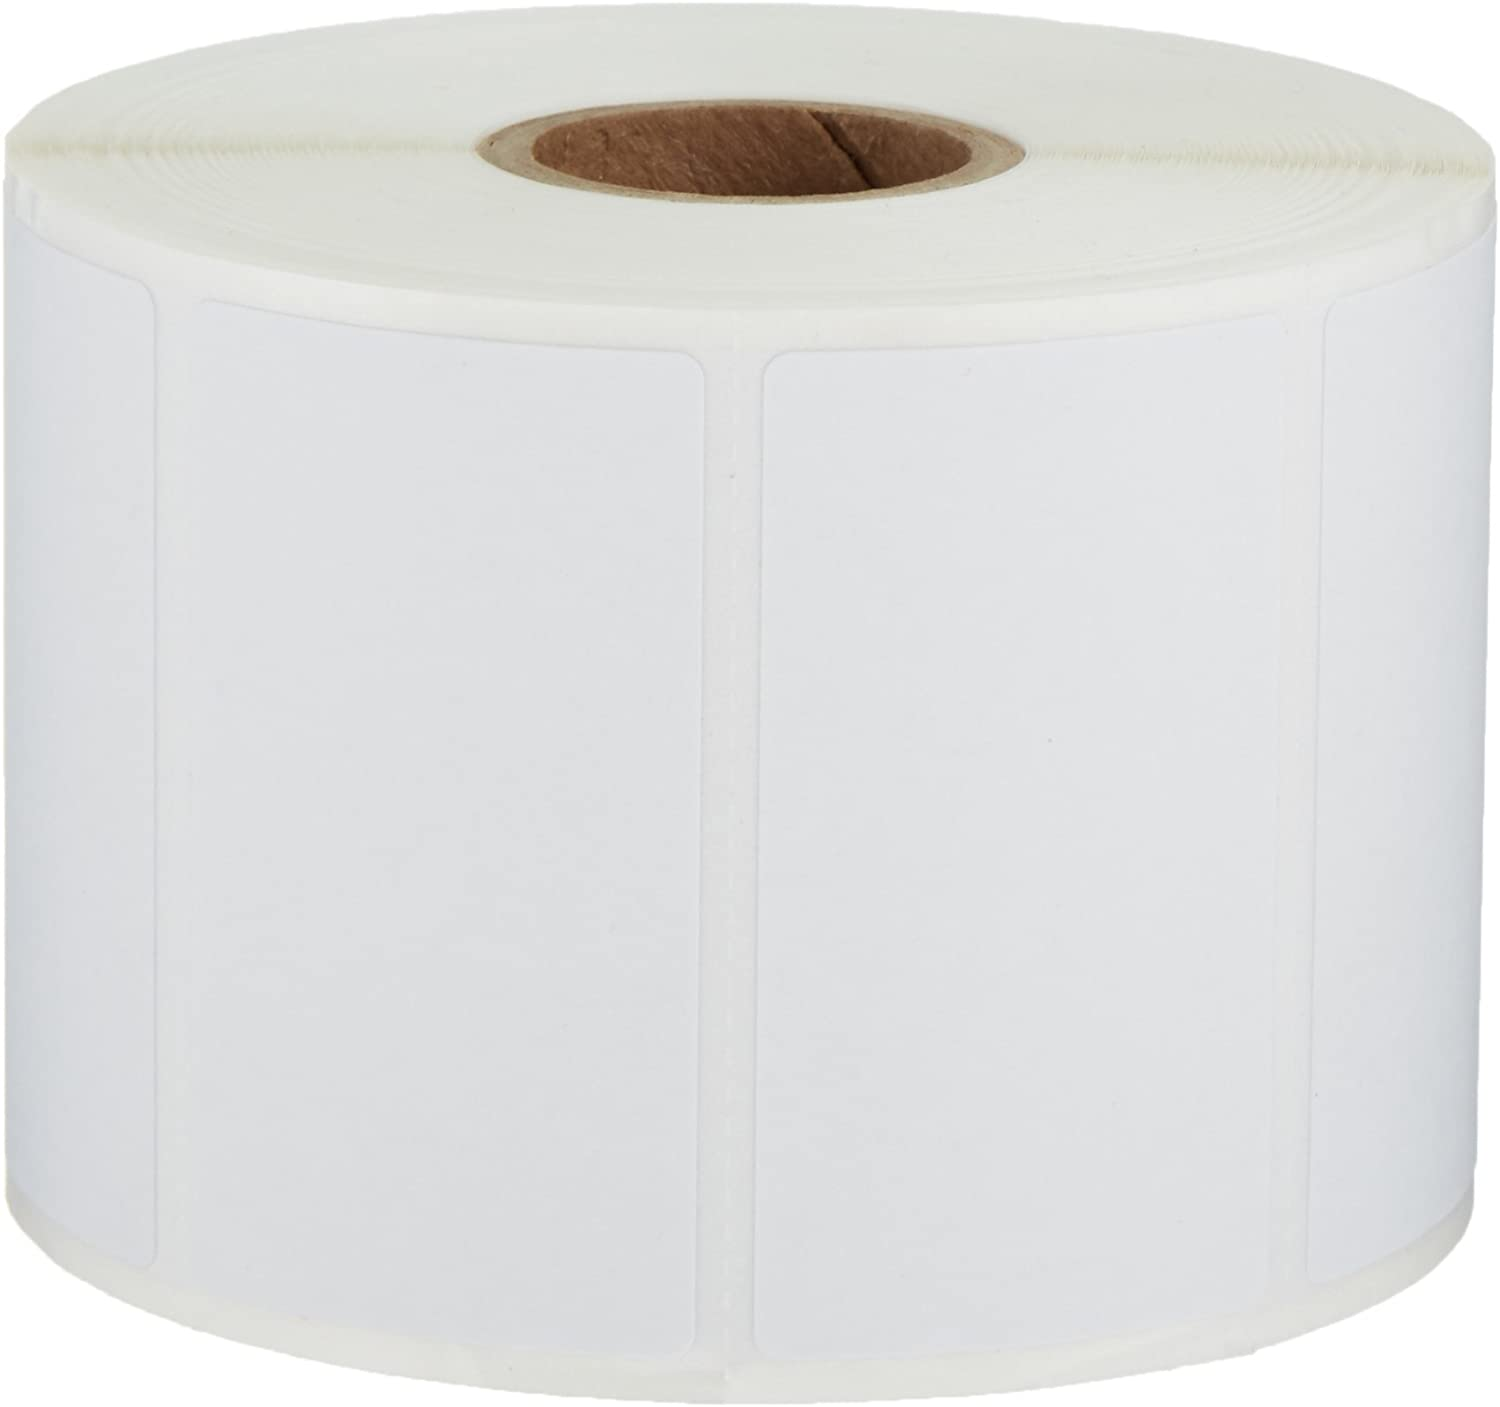 AmazonBasics Permanent Adhesive Address Labels for Direct Thermal Printers, White, 2-1/4'' x 1-1/4'', 1,000 Labels per Roll, 12 Rolls